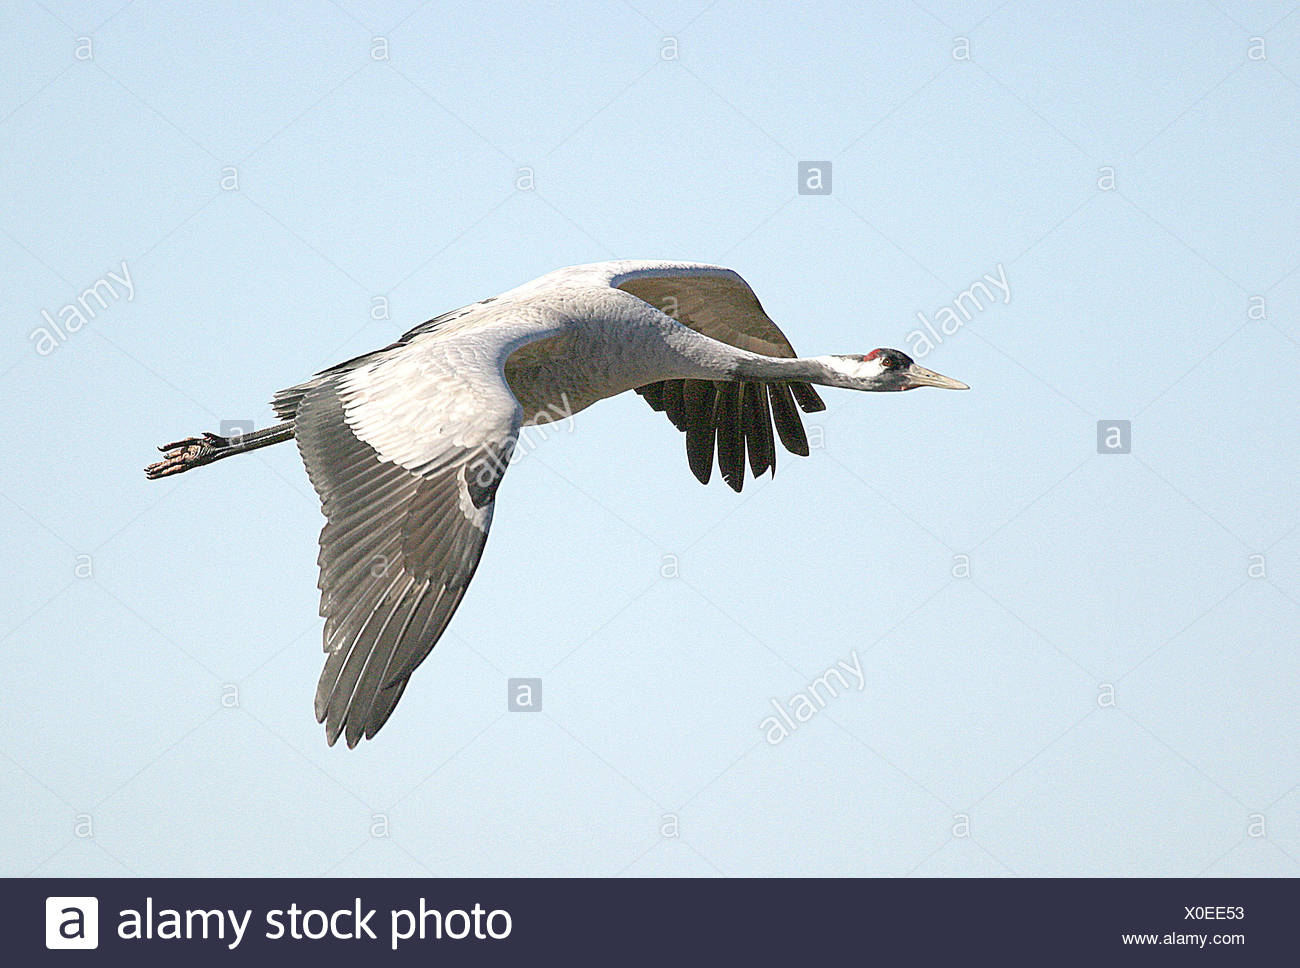 bird birds sweden crane grus grus common crane grauer kranich eurasischer Stock Photo